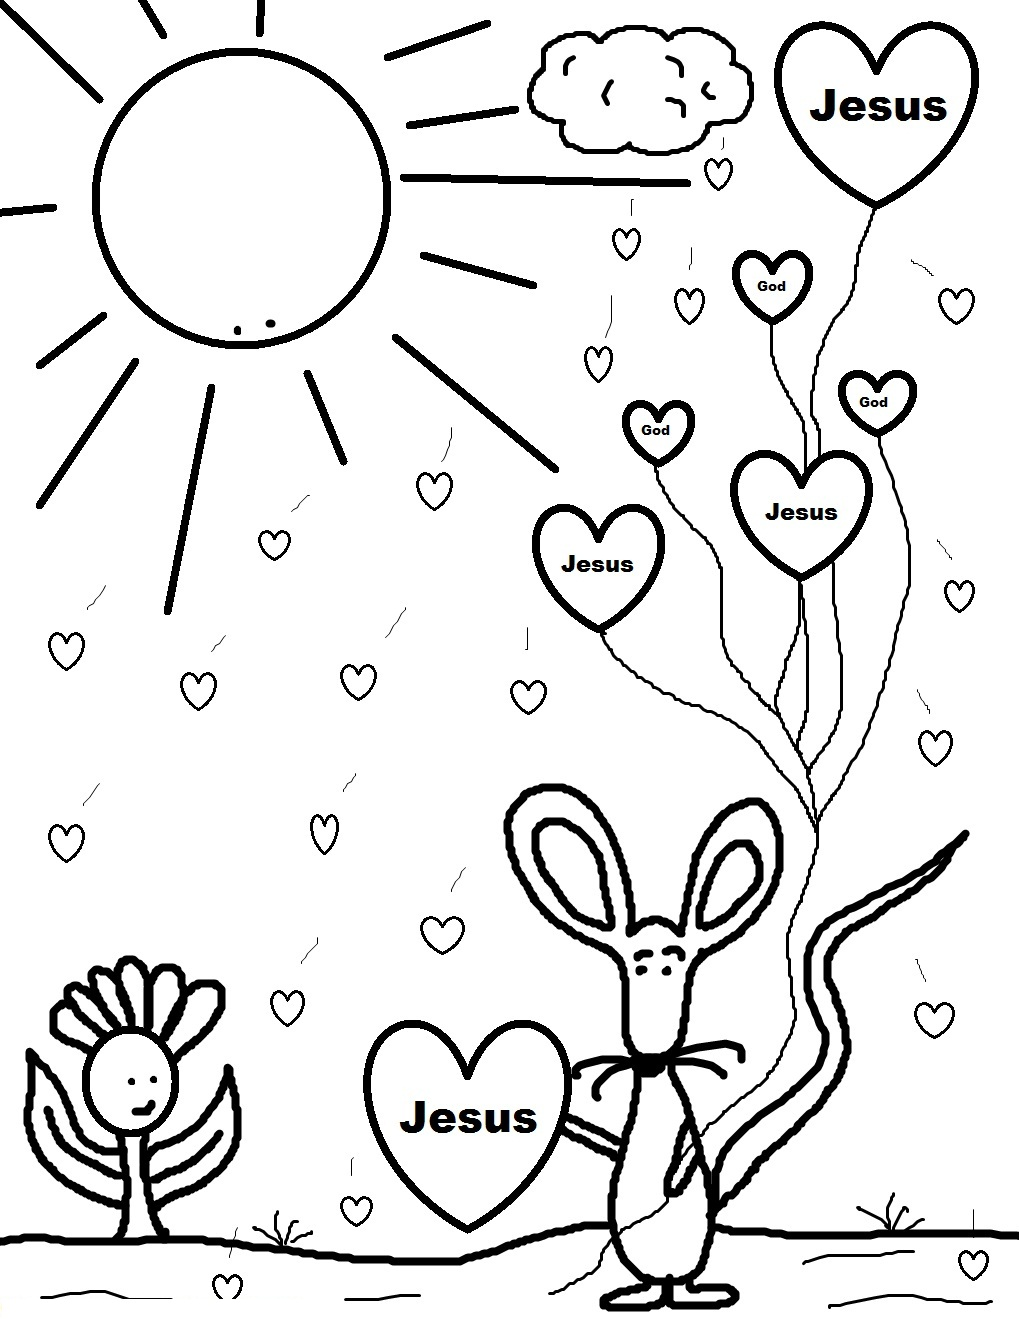 Adult Best Christian Valentines Day Coloring Pages Images beauty free printable valentine coloring pages for kids valentines day images